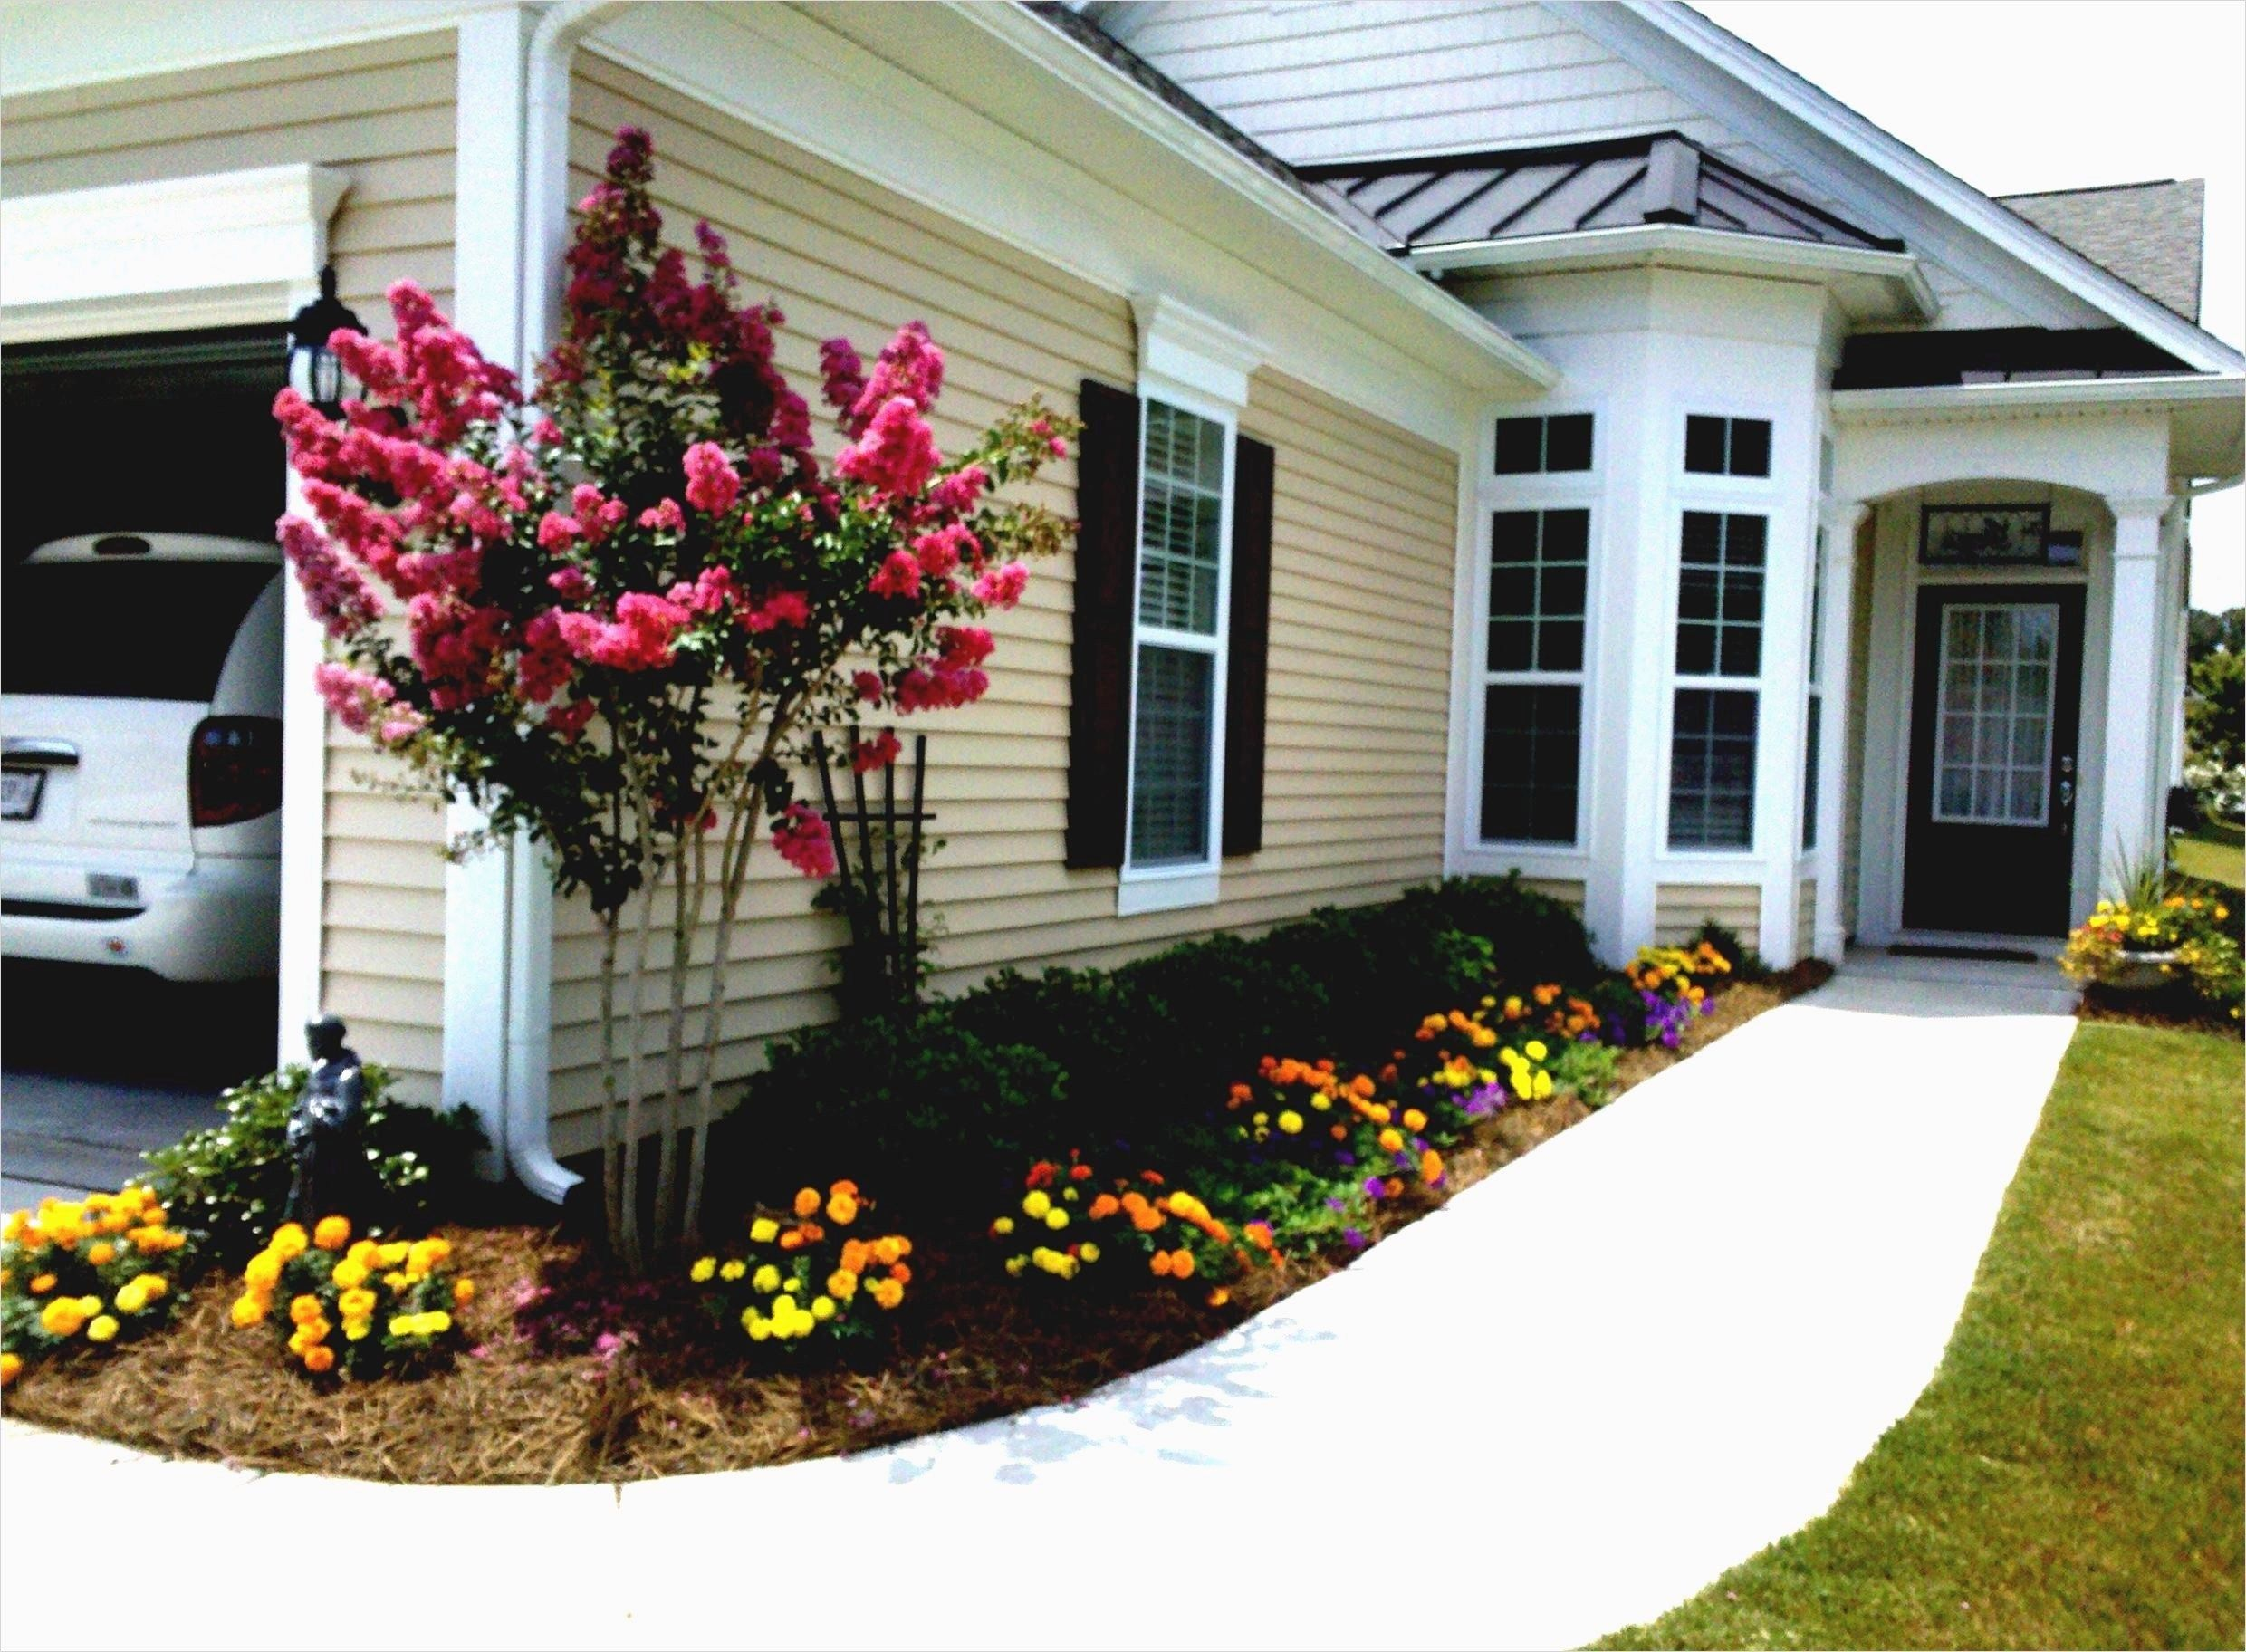 landscaping ideas on a budget 10 | Small front yard ... on Yard Ideas On A Budget id=25244